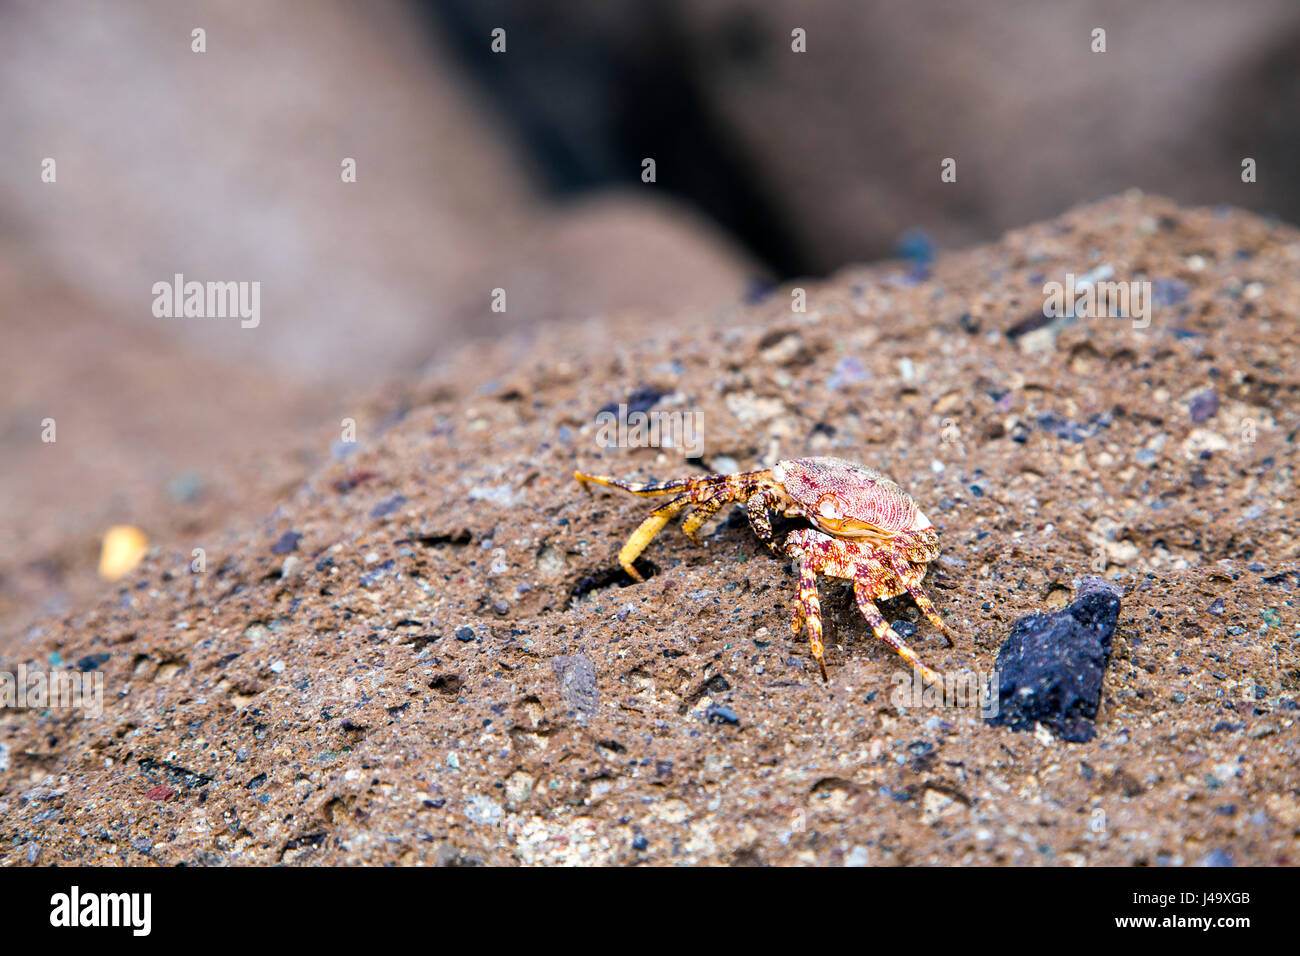 A brachyura crab sitting on a rock in Tenerife, Spain - Stock Image